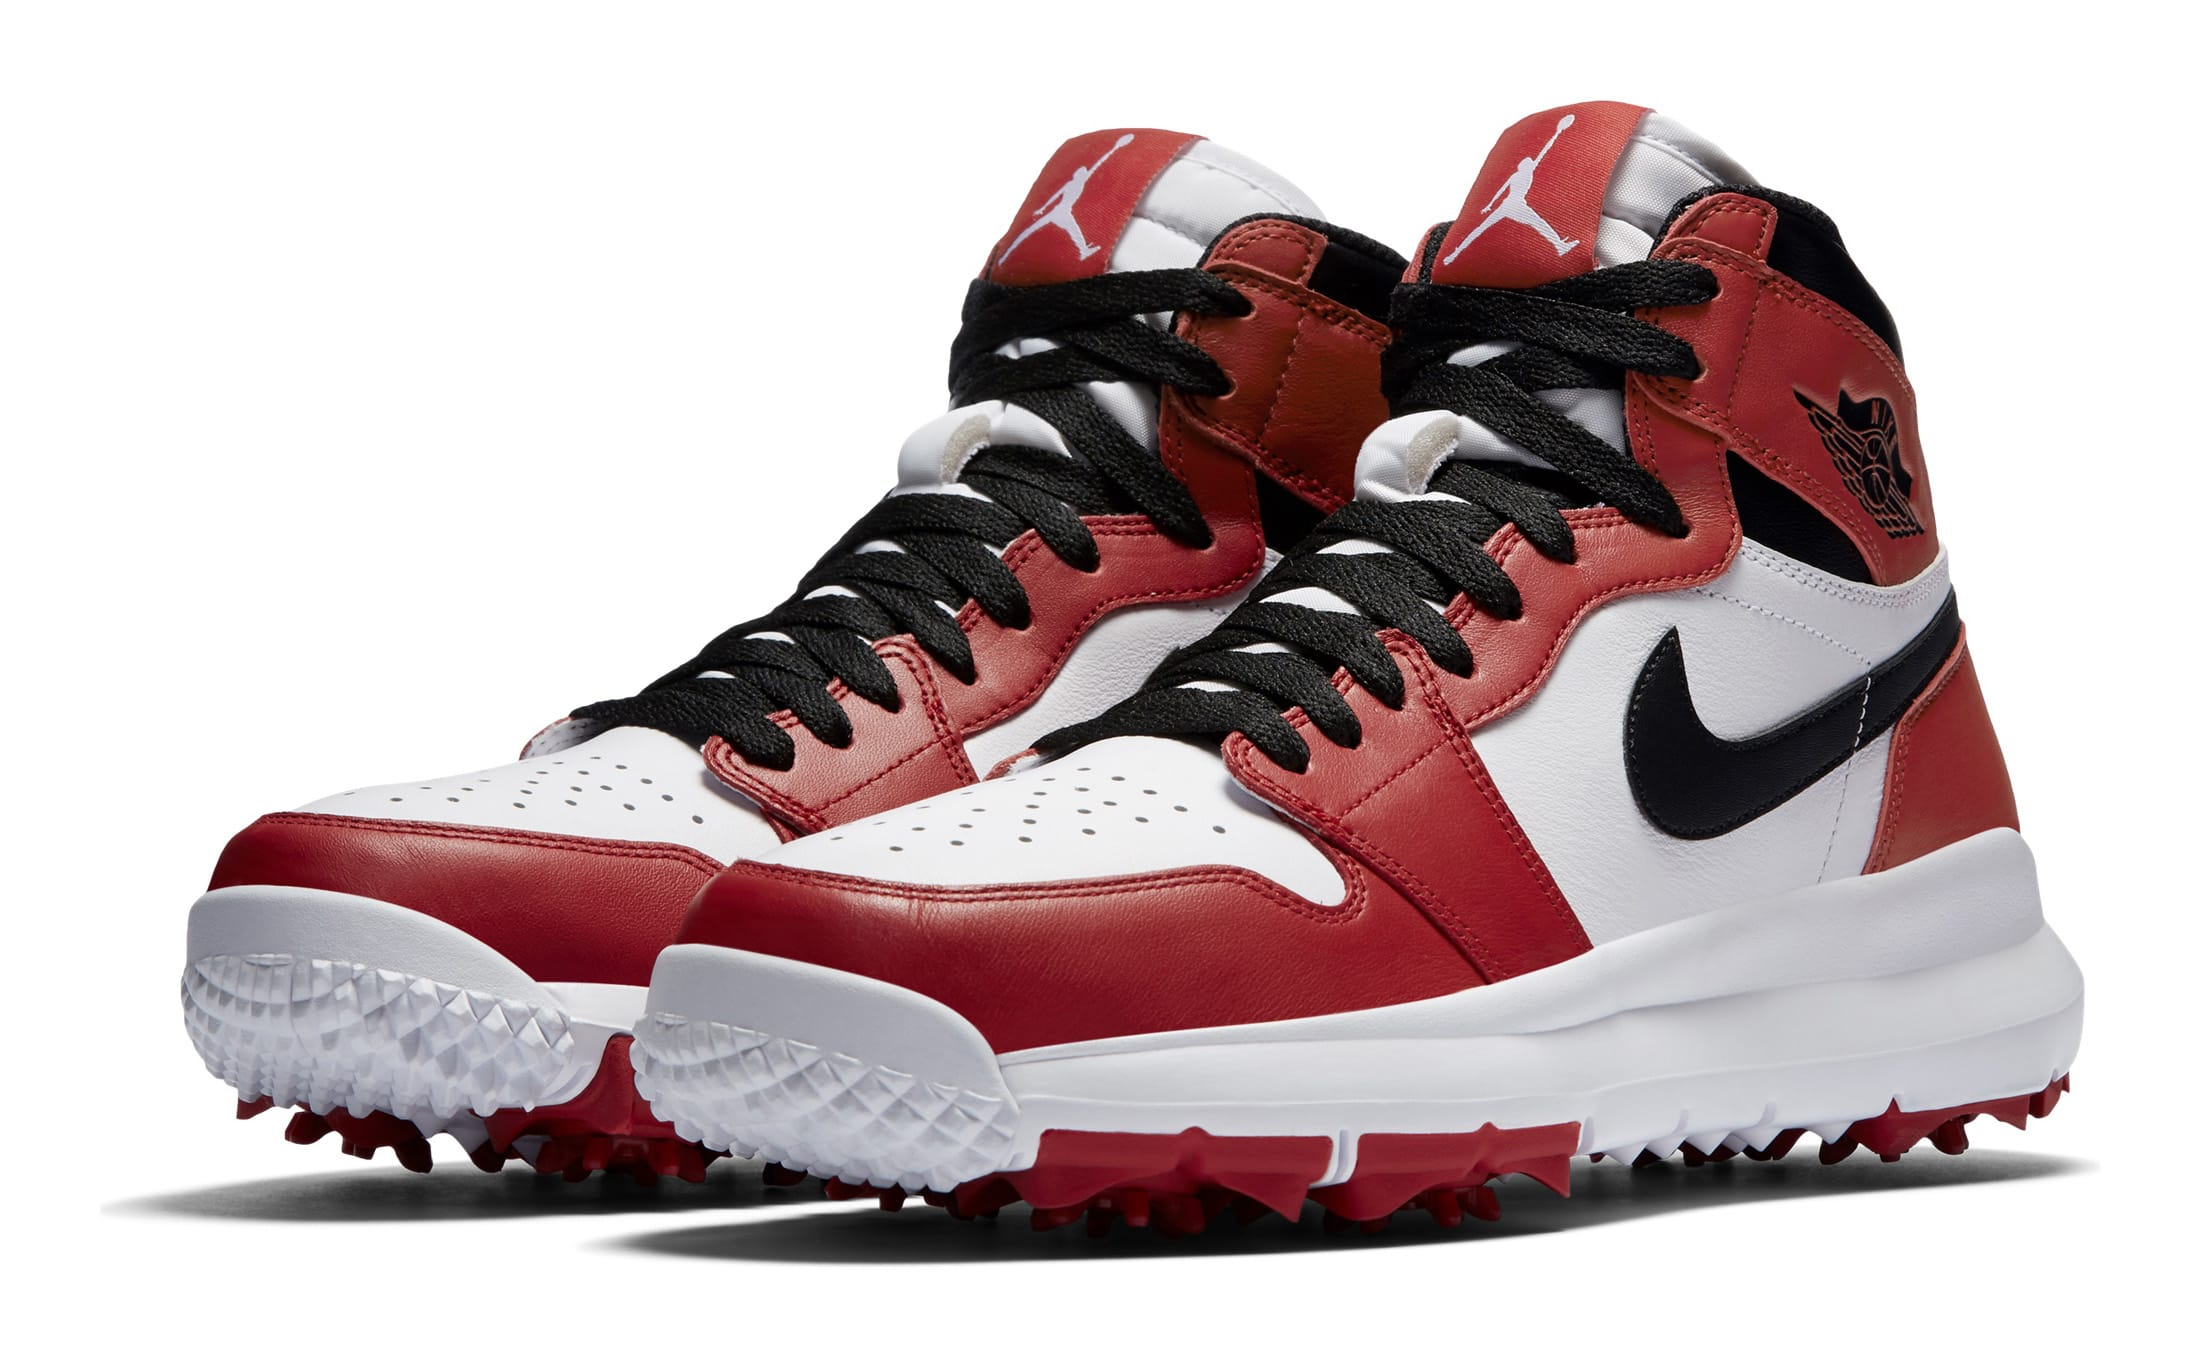 d1cdde7f8 Chicago Air jordan 1 Golf